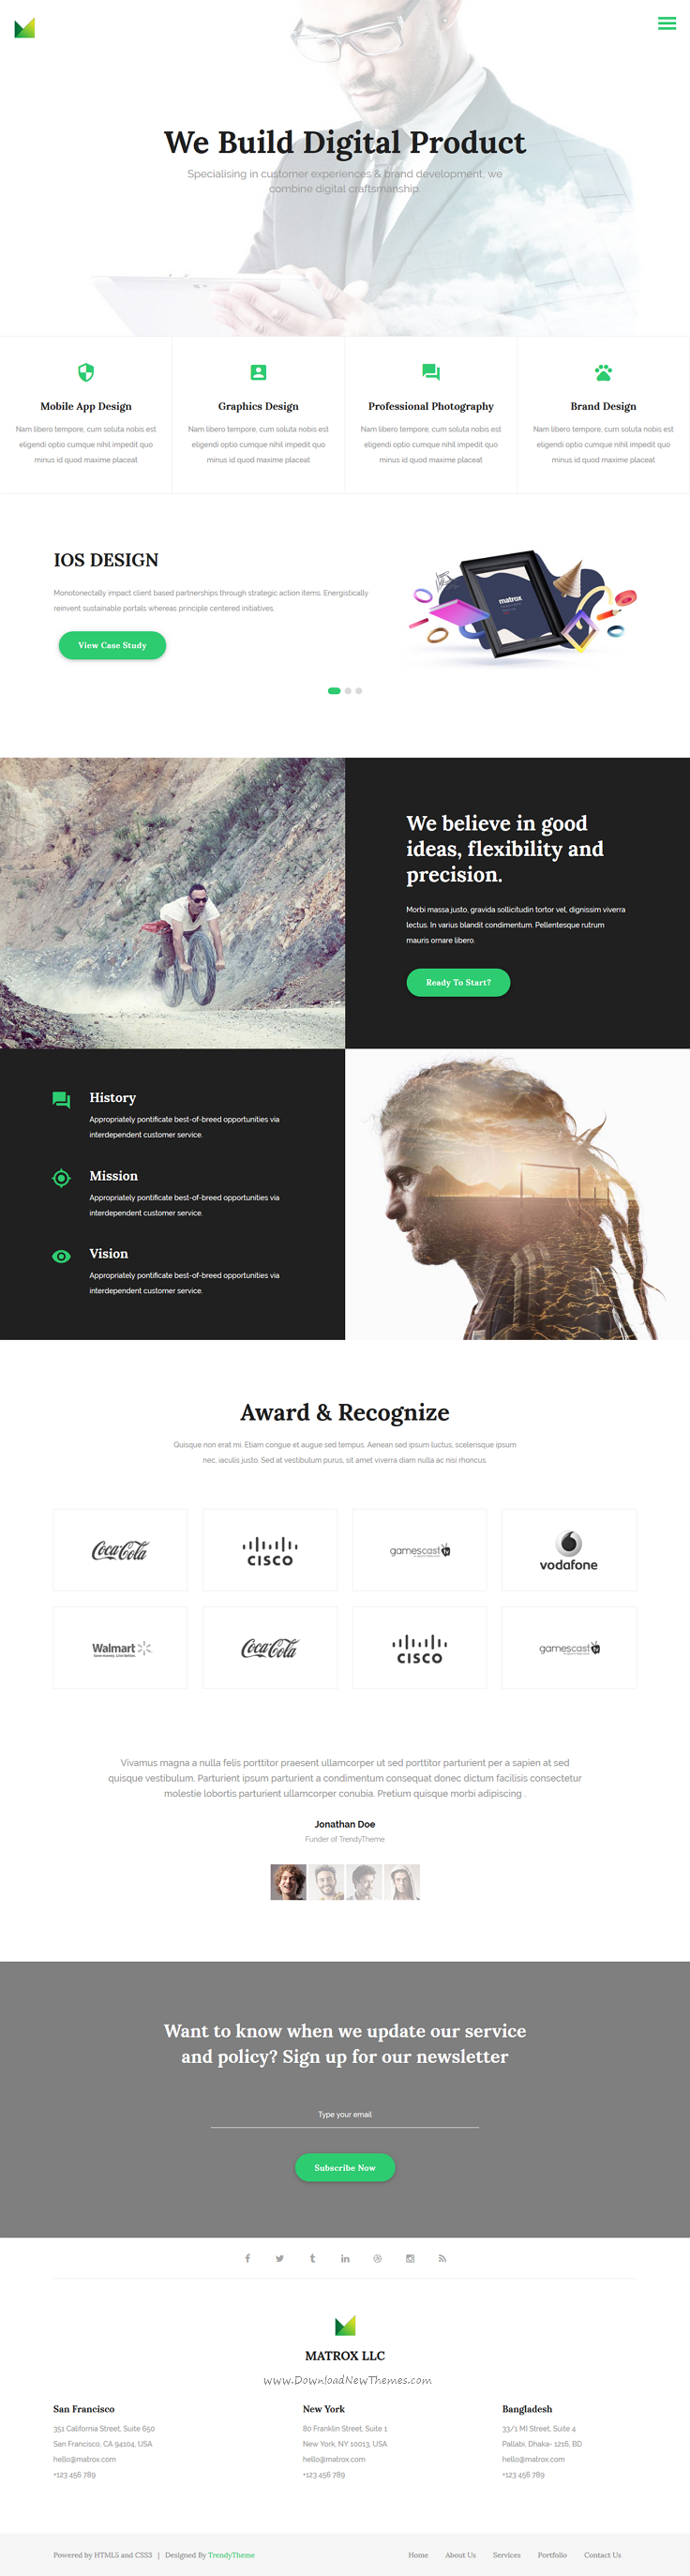 Materialize - Material Design Based Multipurpose HTML Template ...